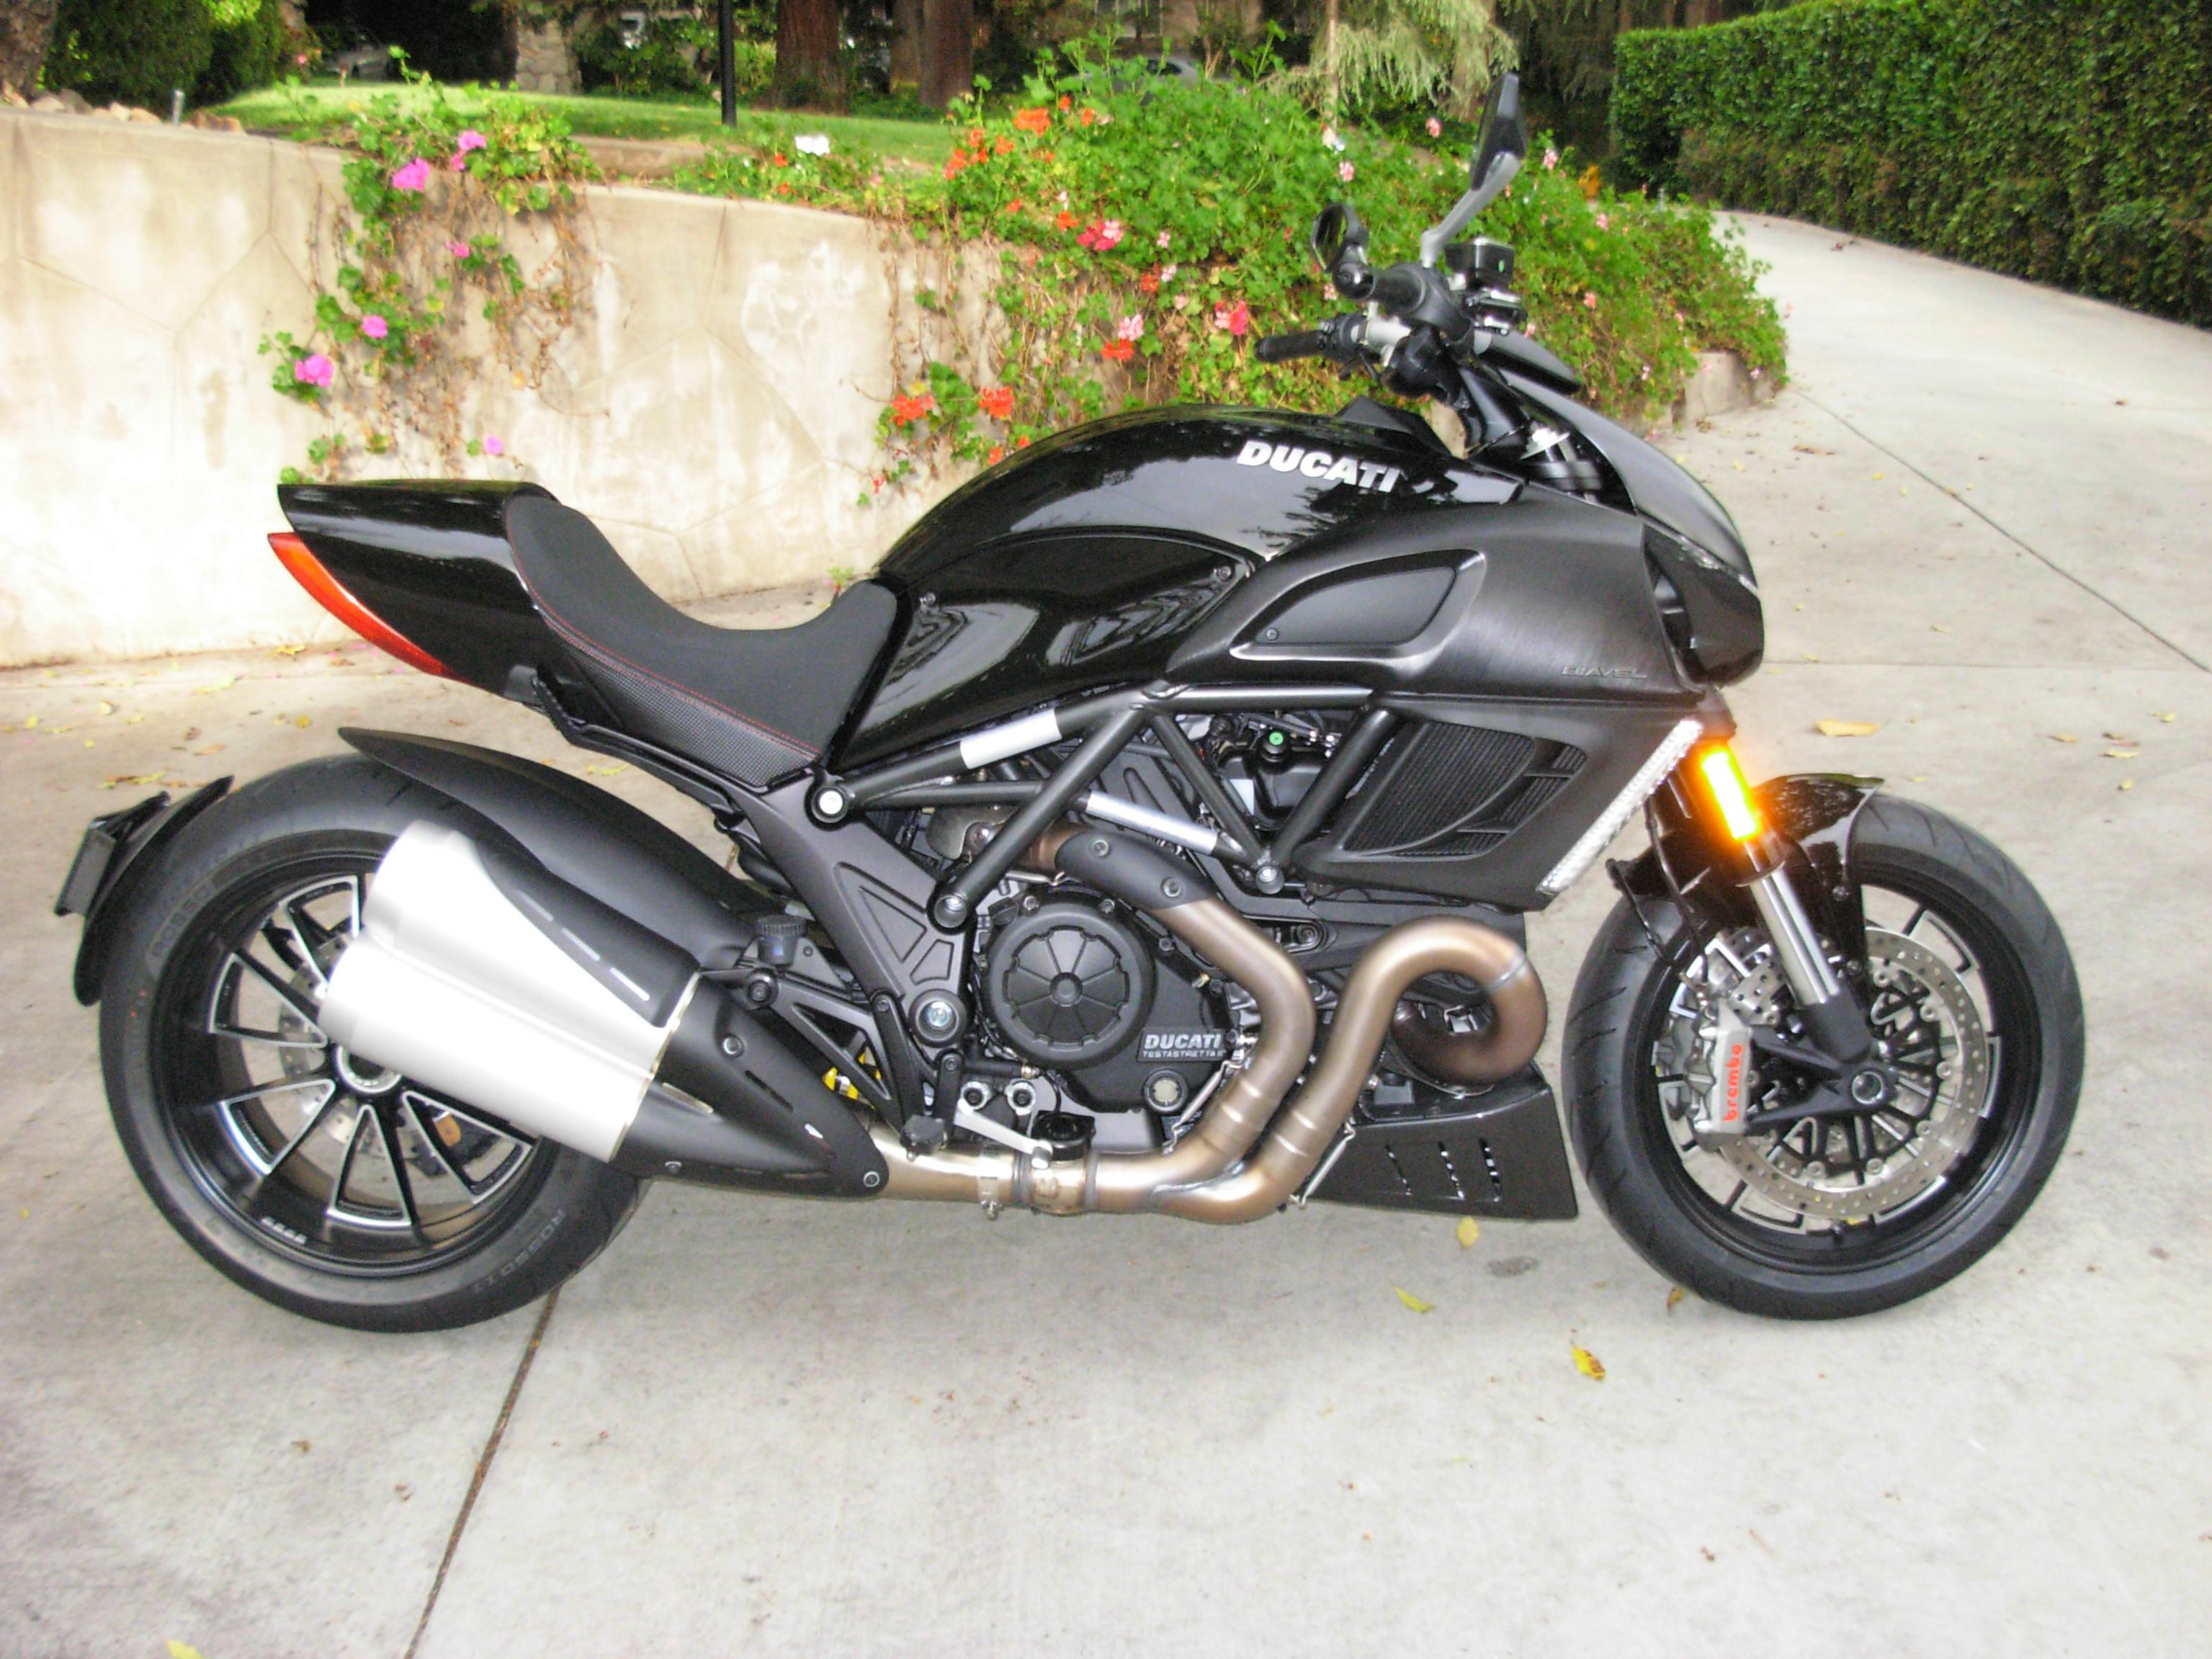 Diavel Picture Thread!-ducati-042411-001.jpg